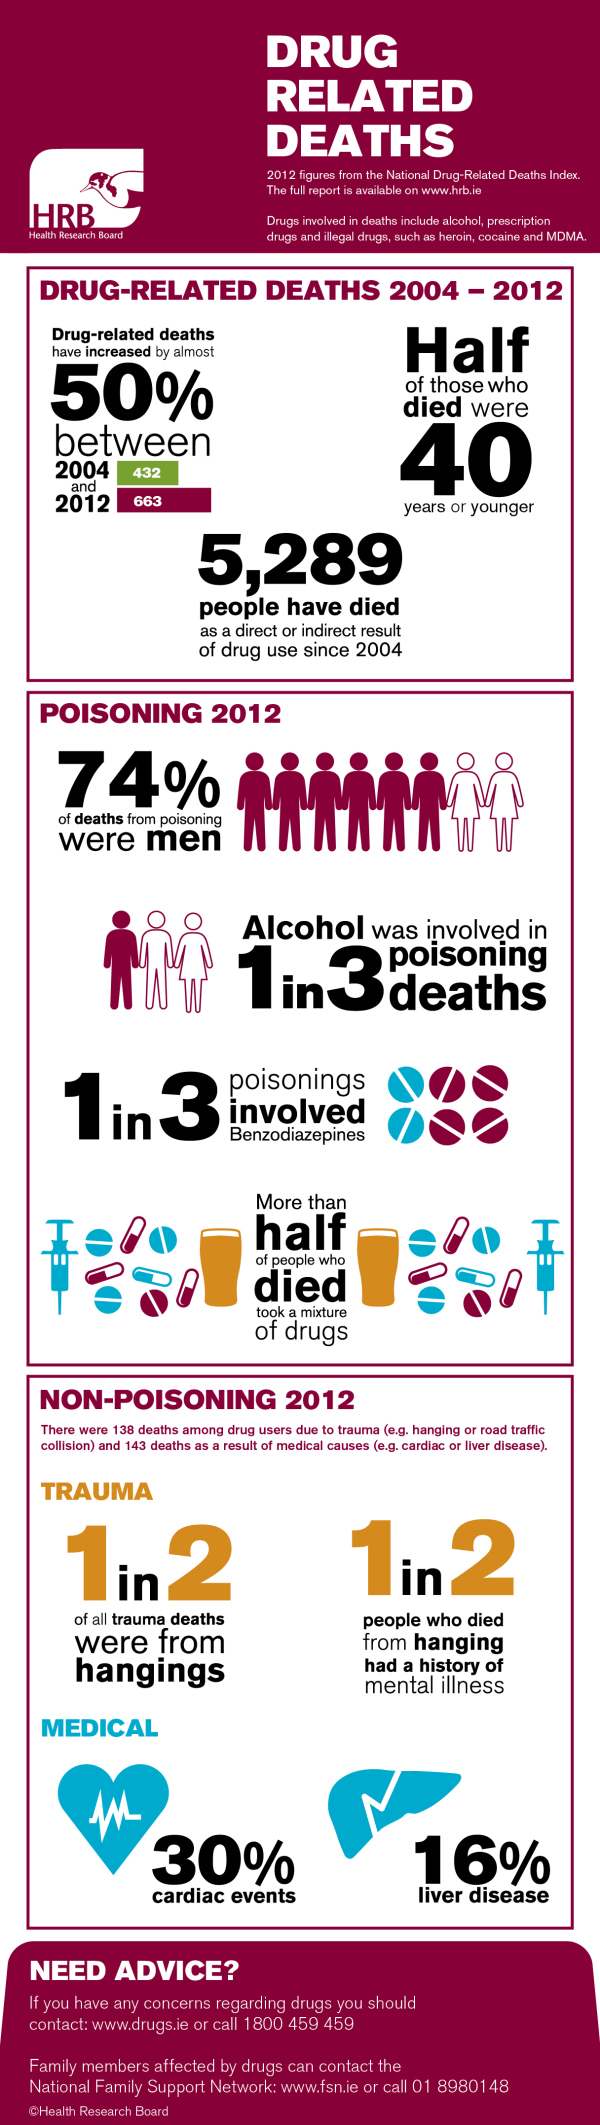 Legal drugs cause 75% of poisoning deaths